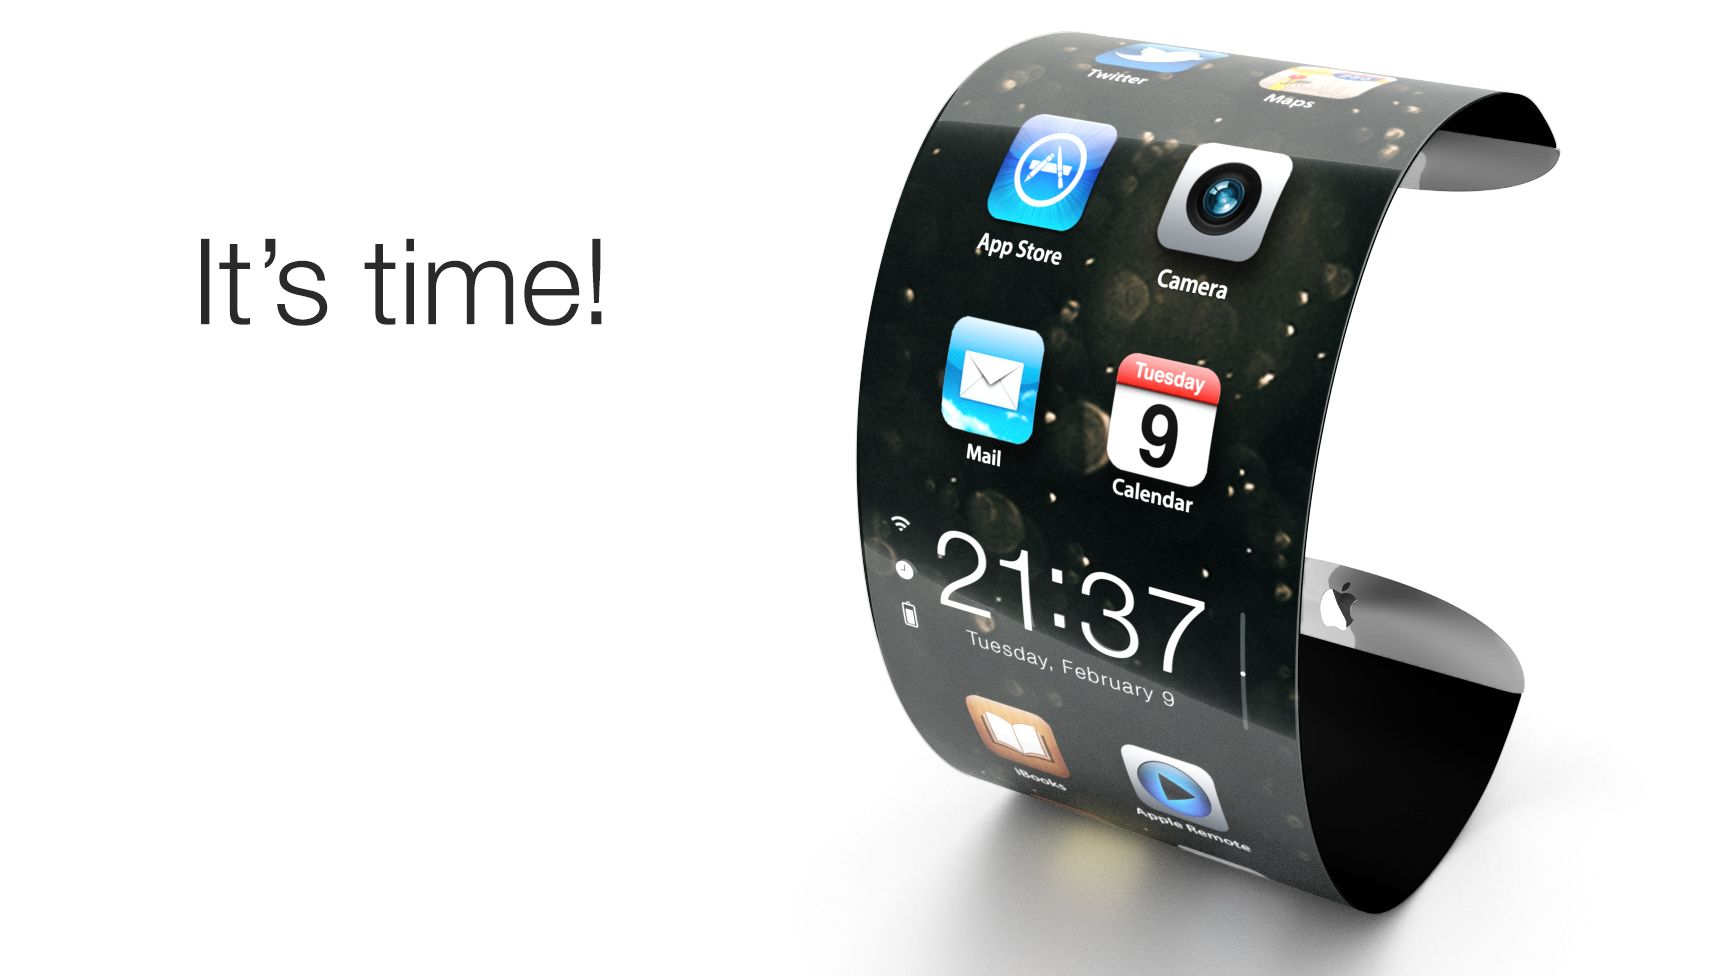 The Smartwatch Iwatch From Apple